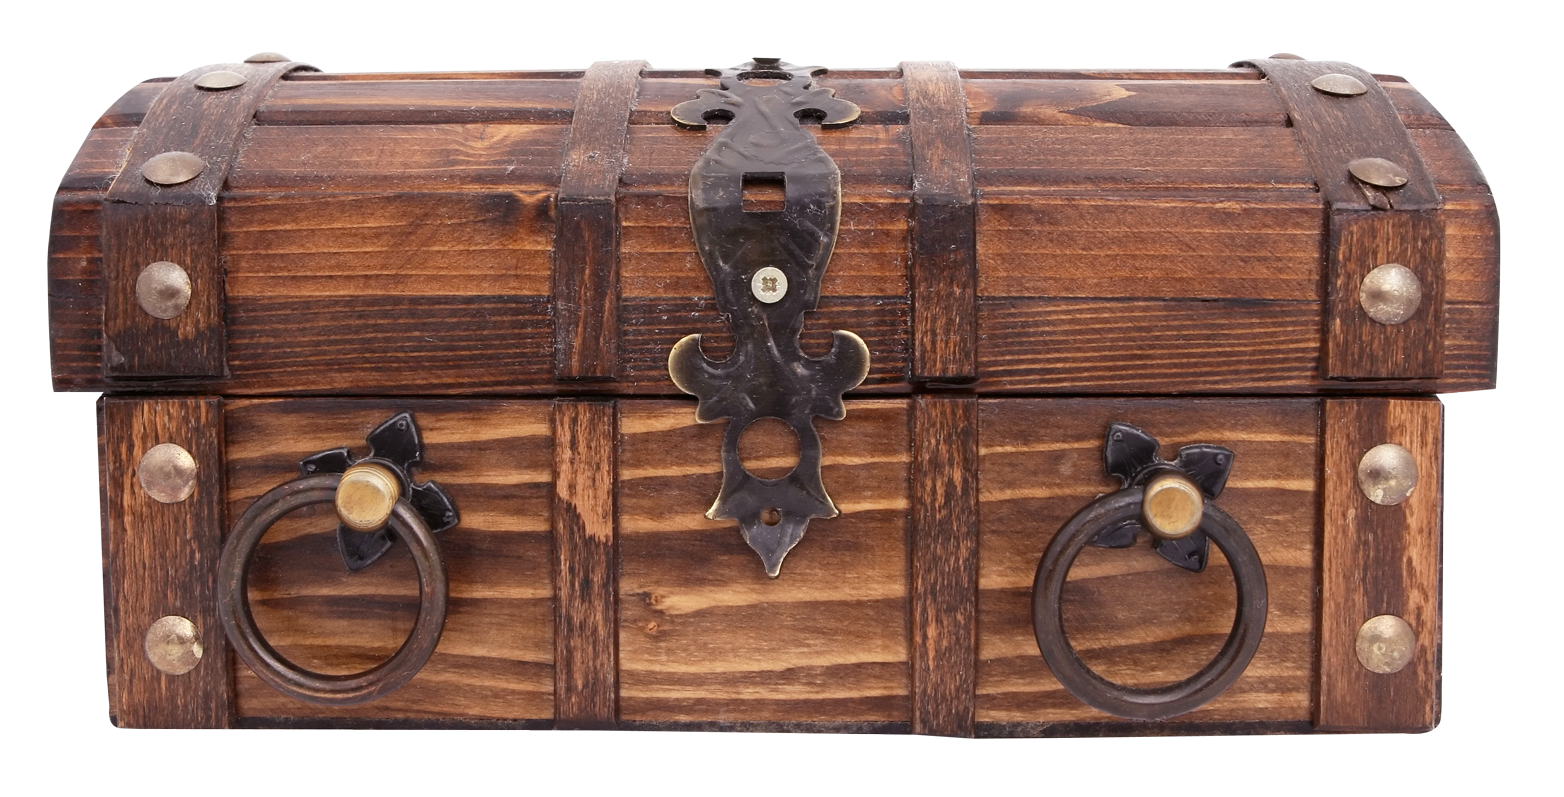 Treasure clipart old chest. Png transparent images pluspng